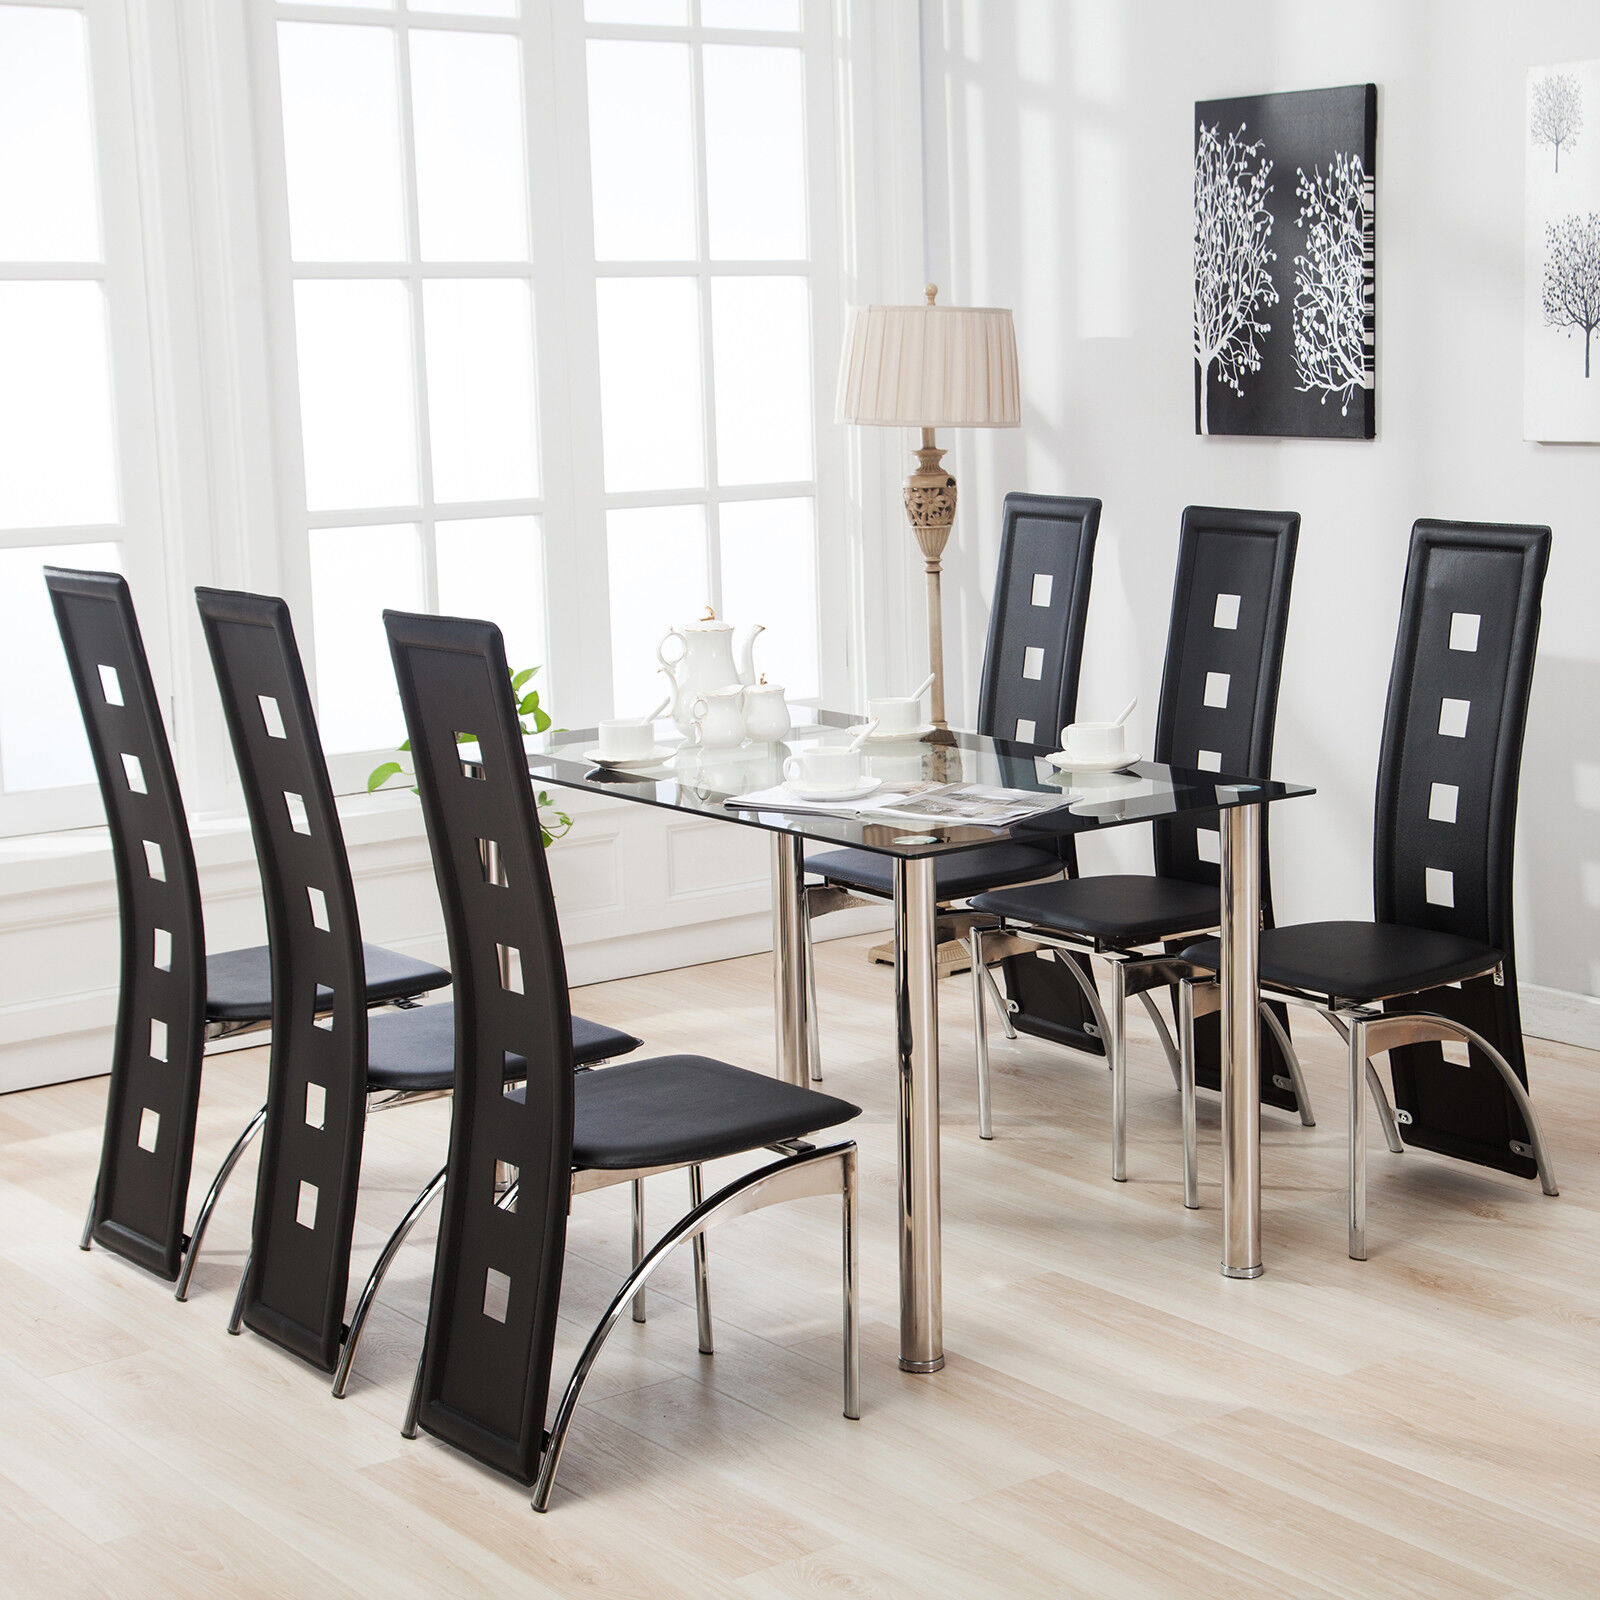 Glass Tables And Chairs Glass Dining Table And 6 High Back Faux Leather Chairs Set